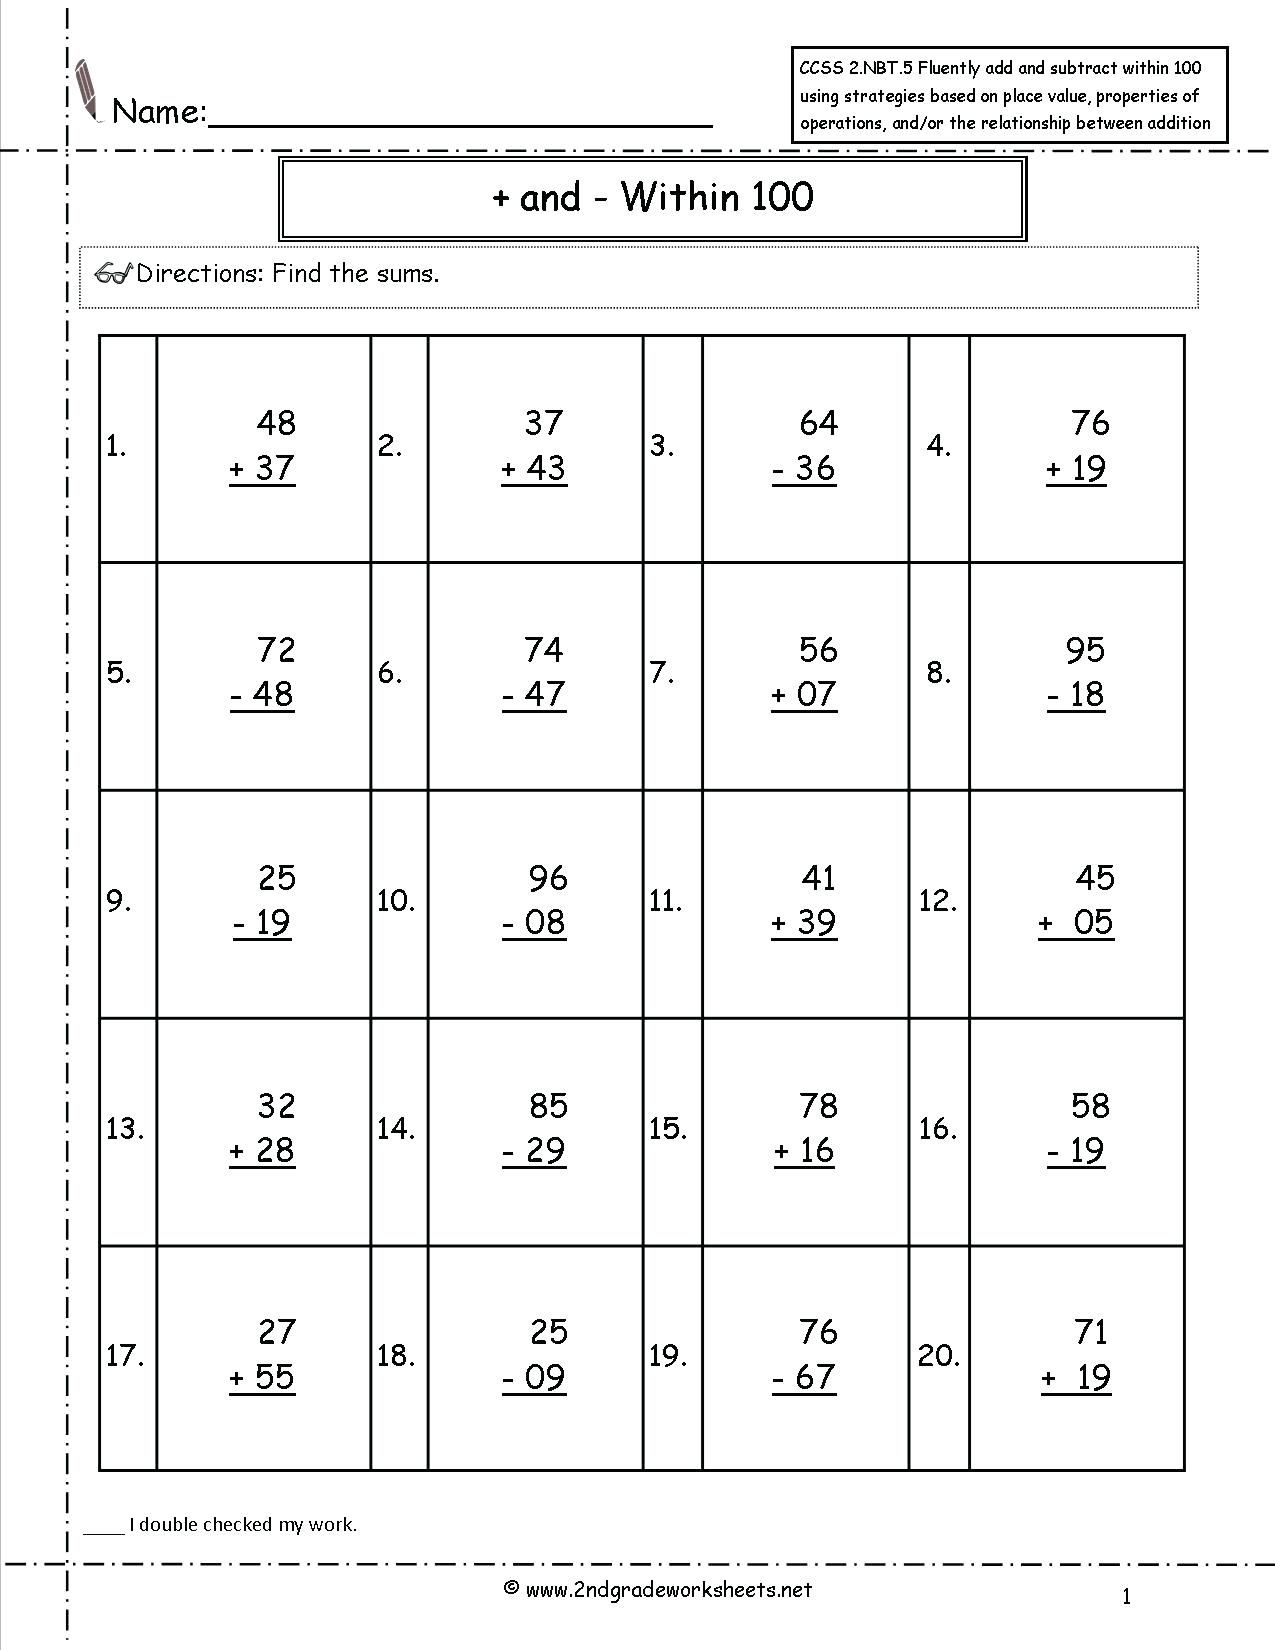 40 Awesome 2nd Grade Math Worksheets Design Ideas